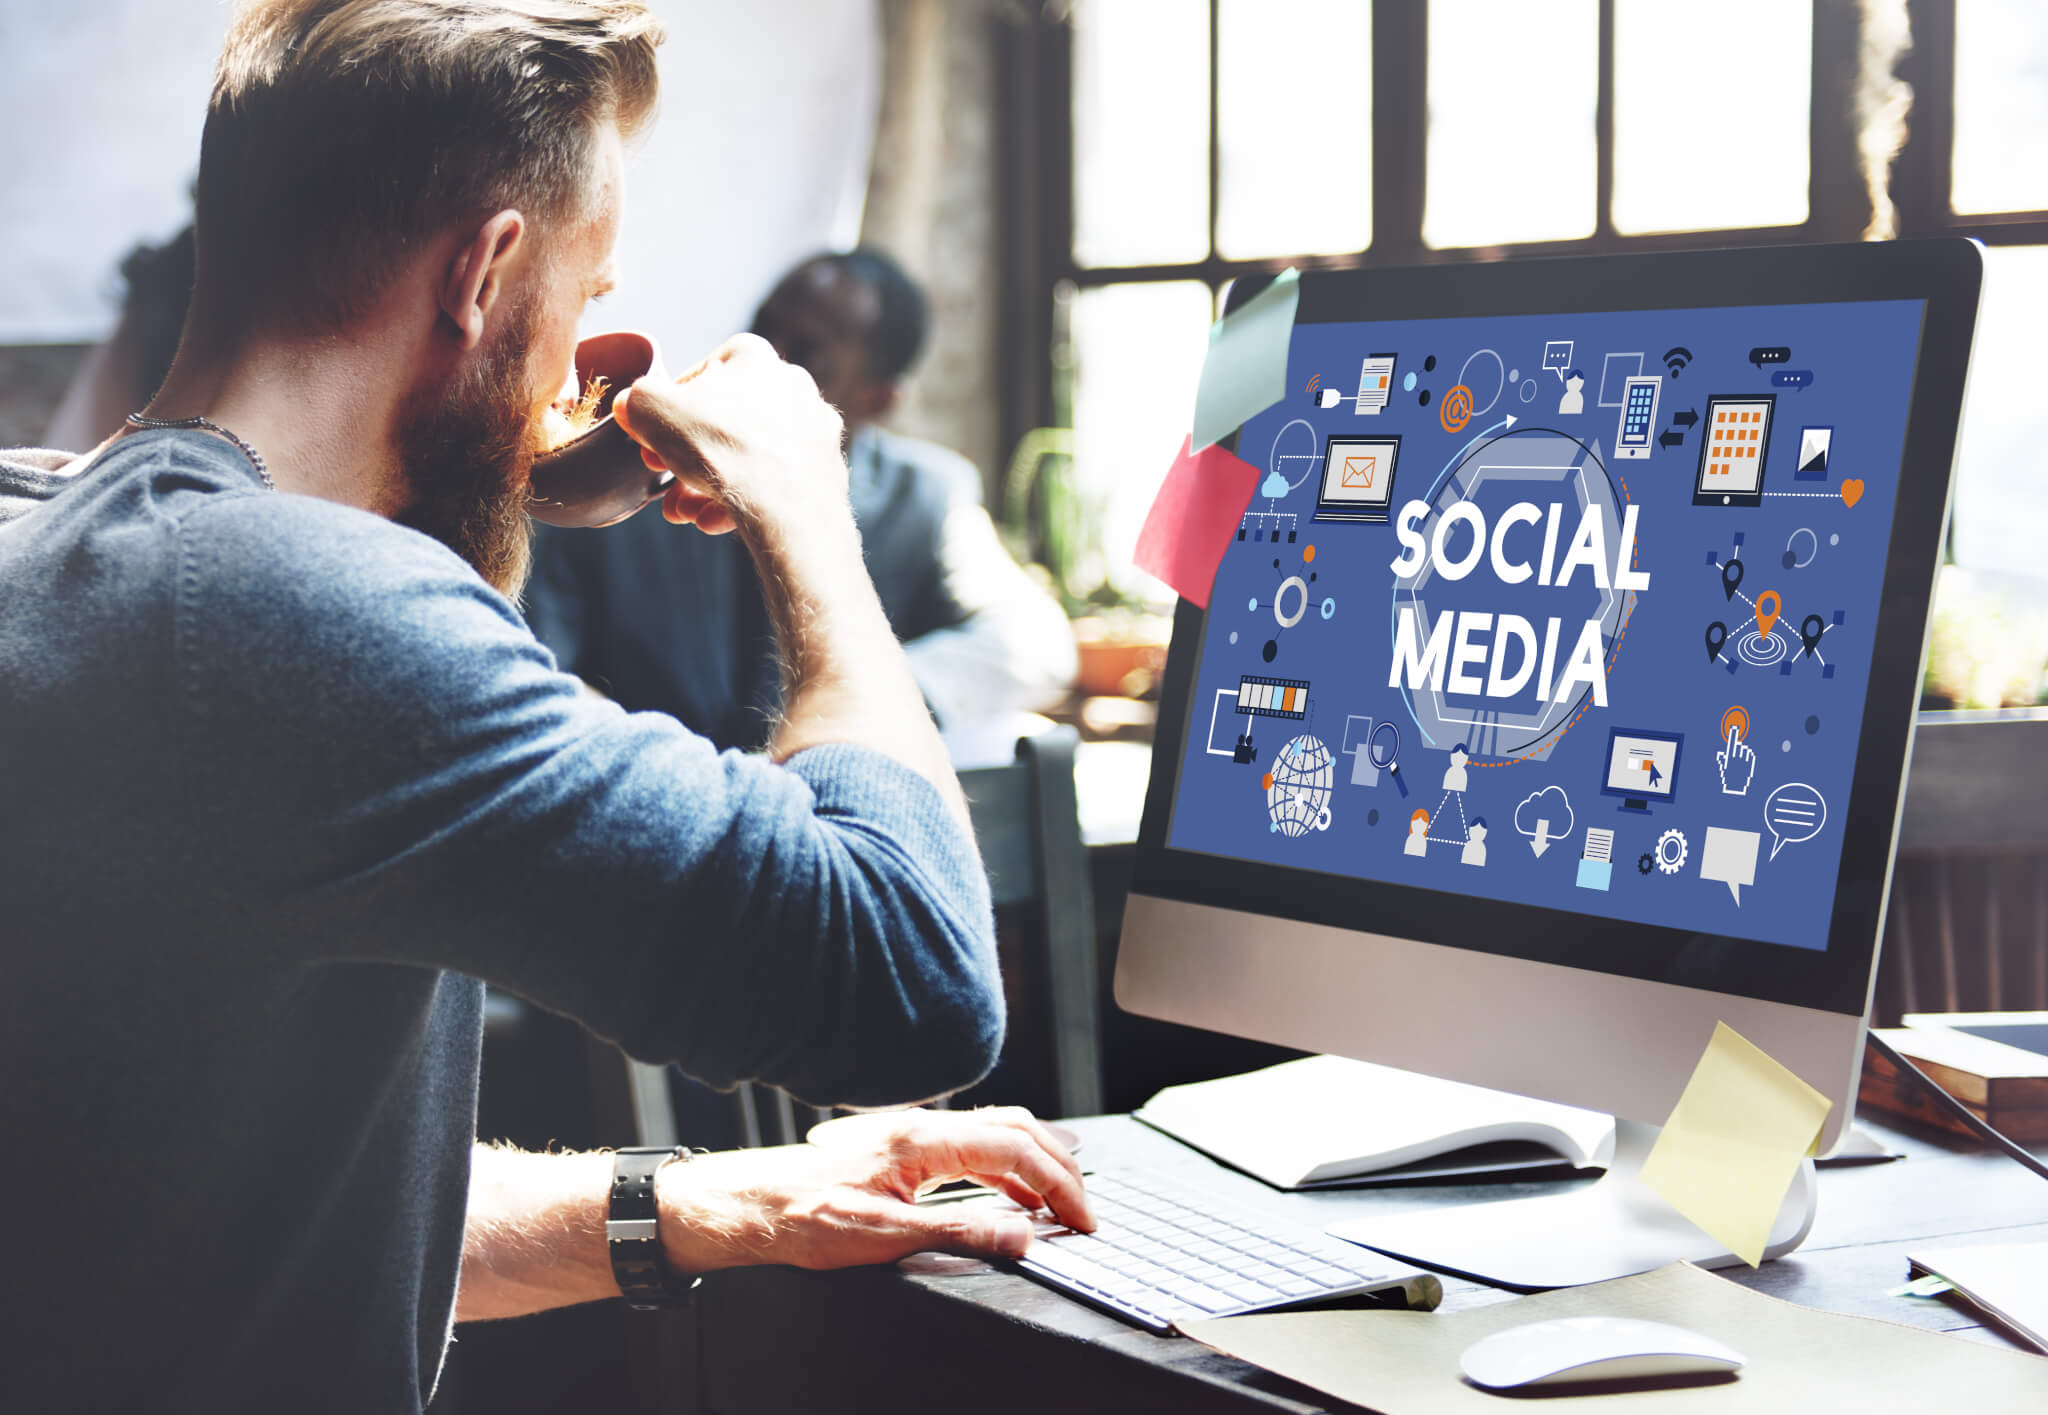 4 Traits of a Successful Social Media Marketer